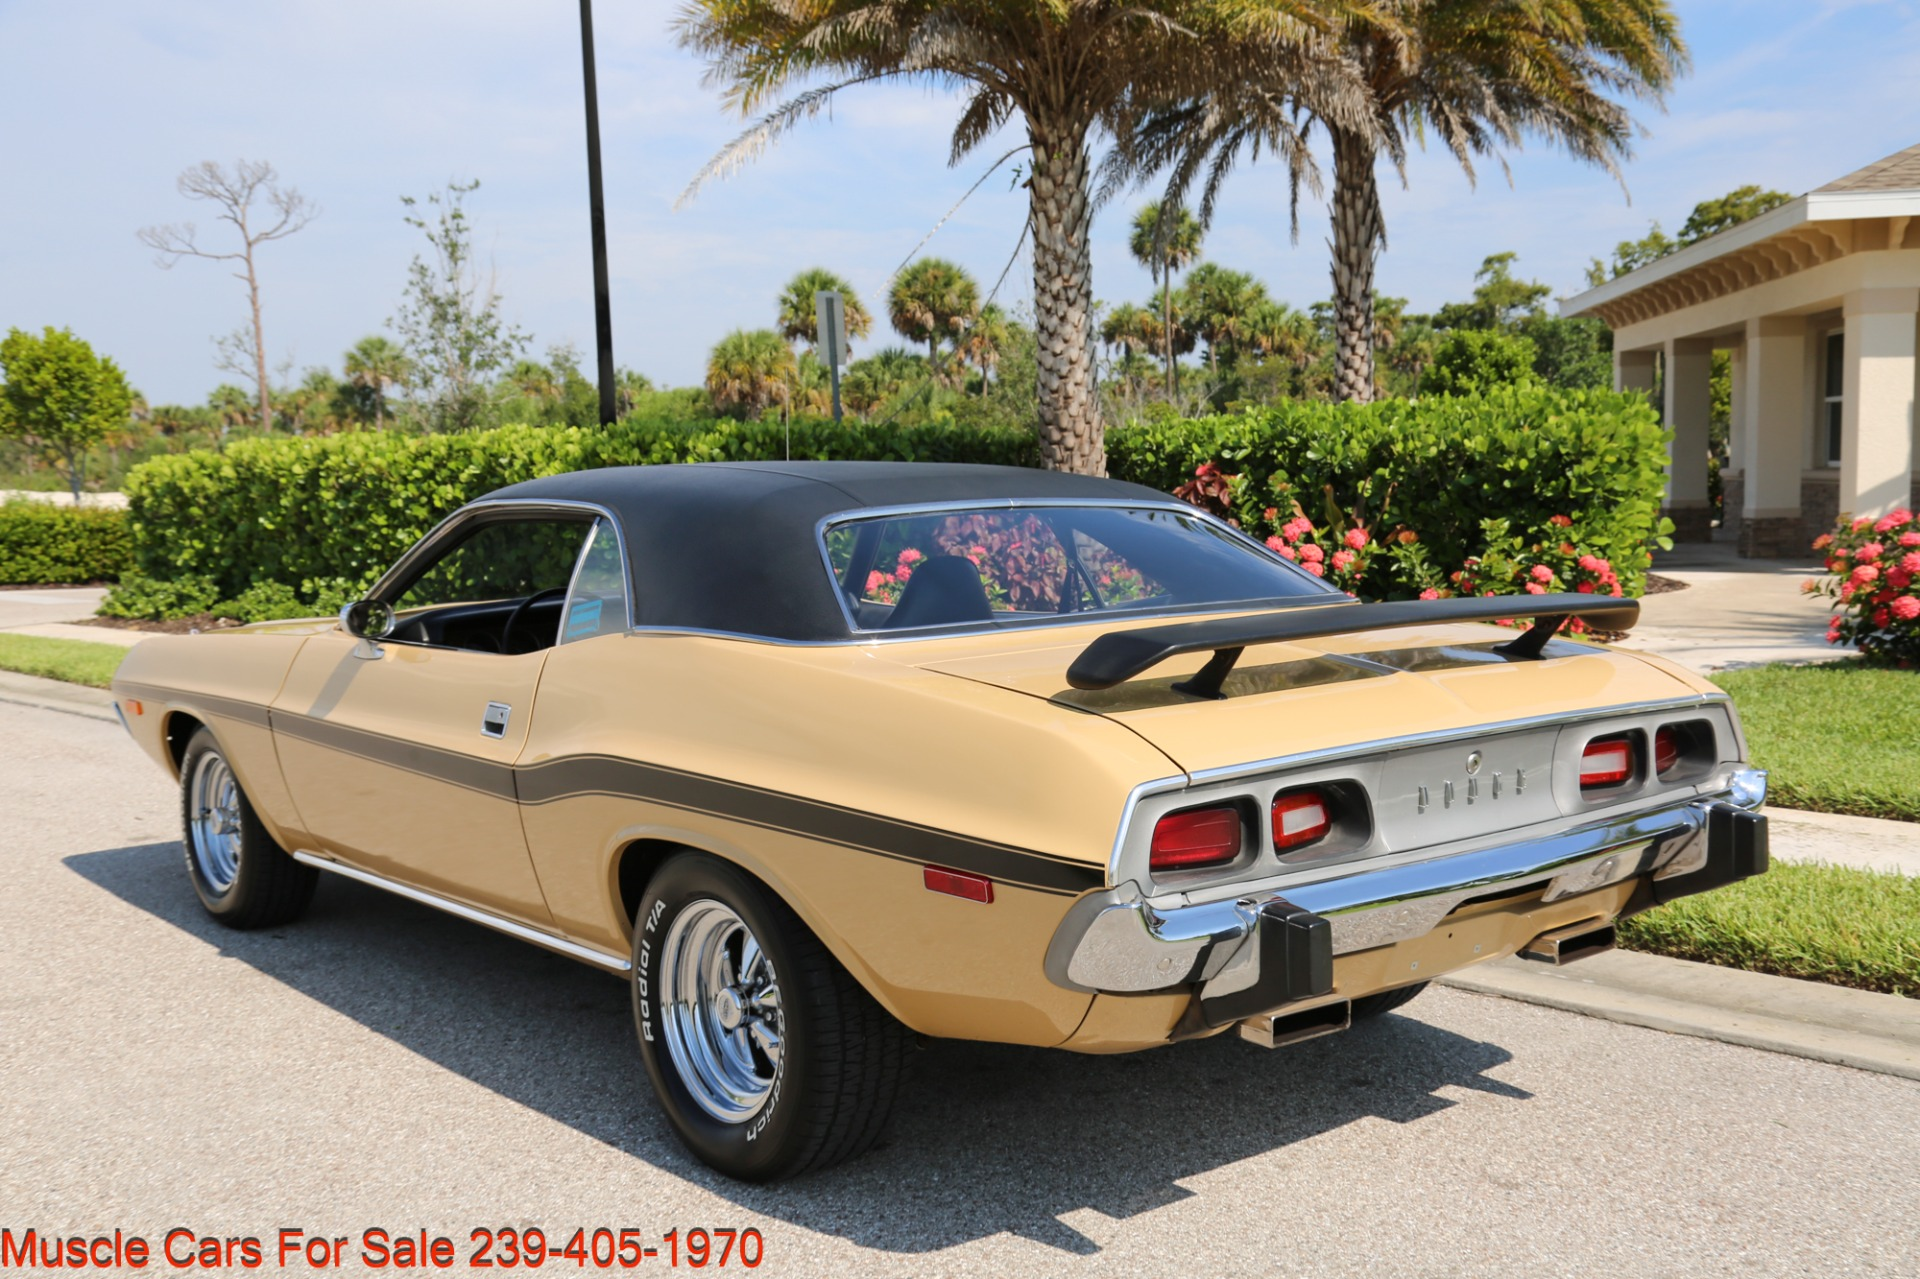 Used 1974 Dodge Challenger V8  Auto for sale $34,000 at Muscle Cars for Sale Inc. in Fort Myers FL 33912 5